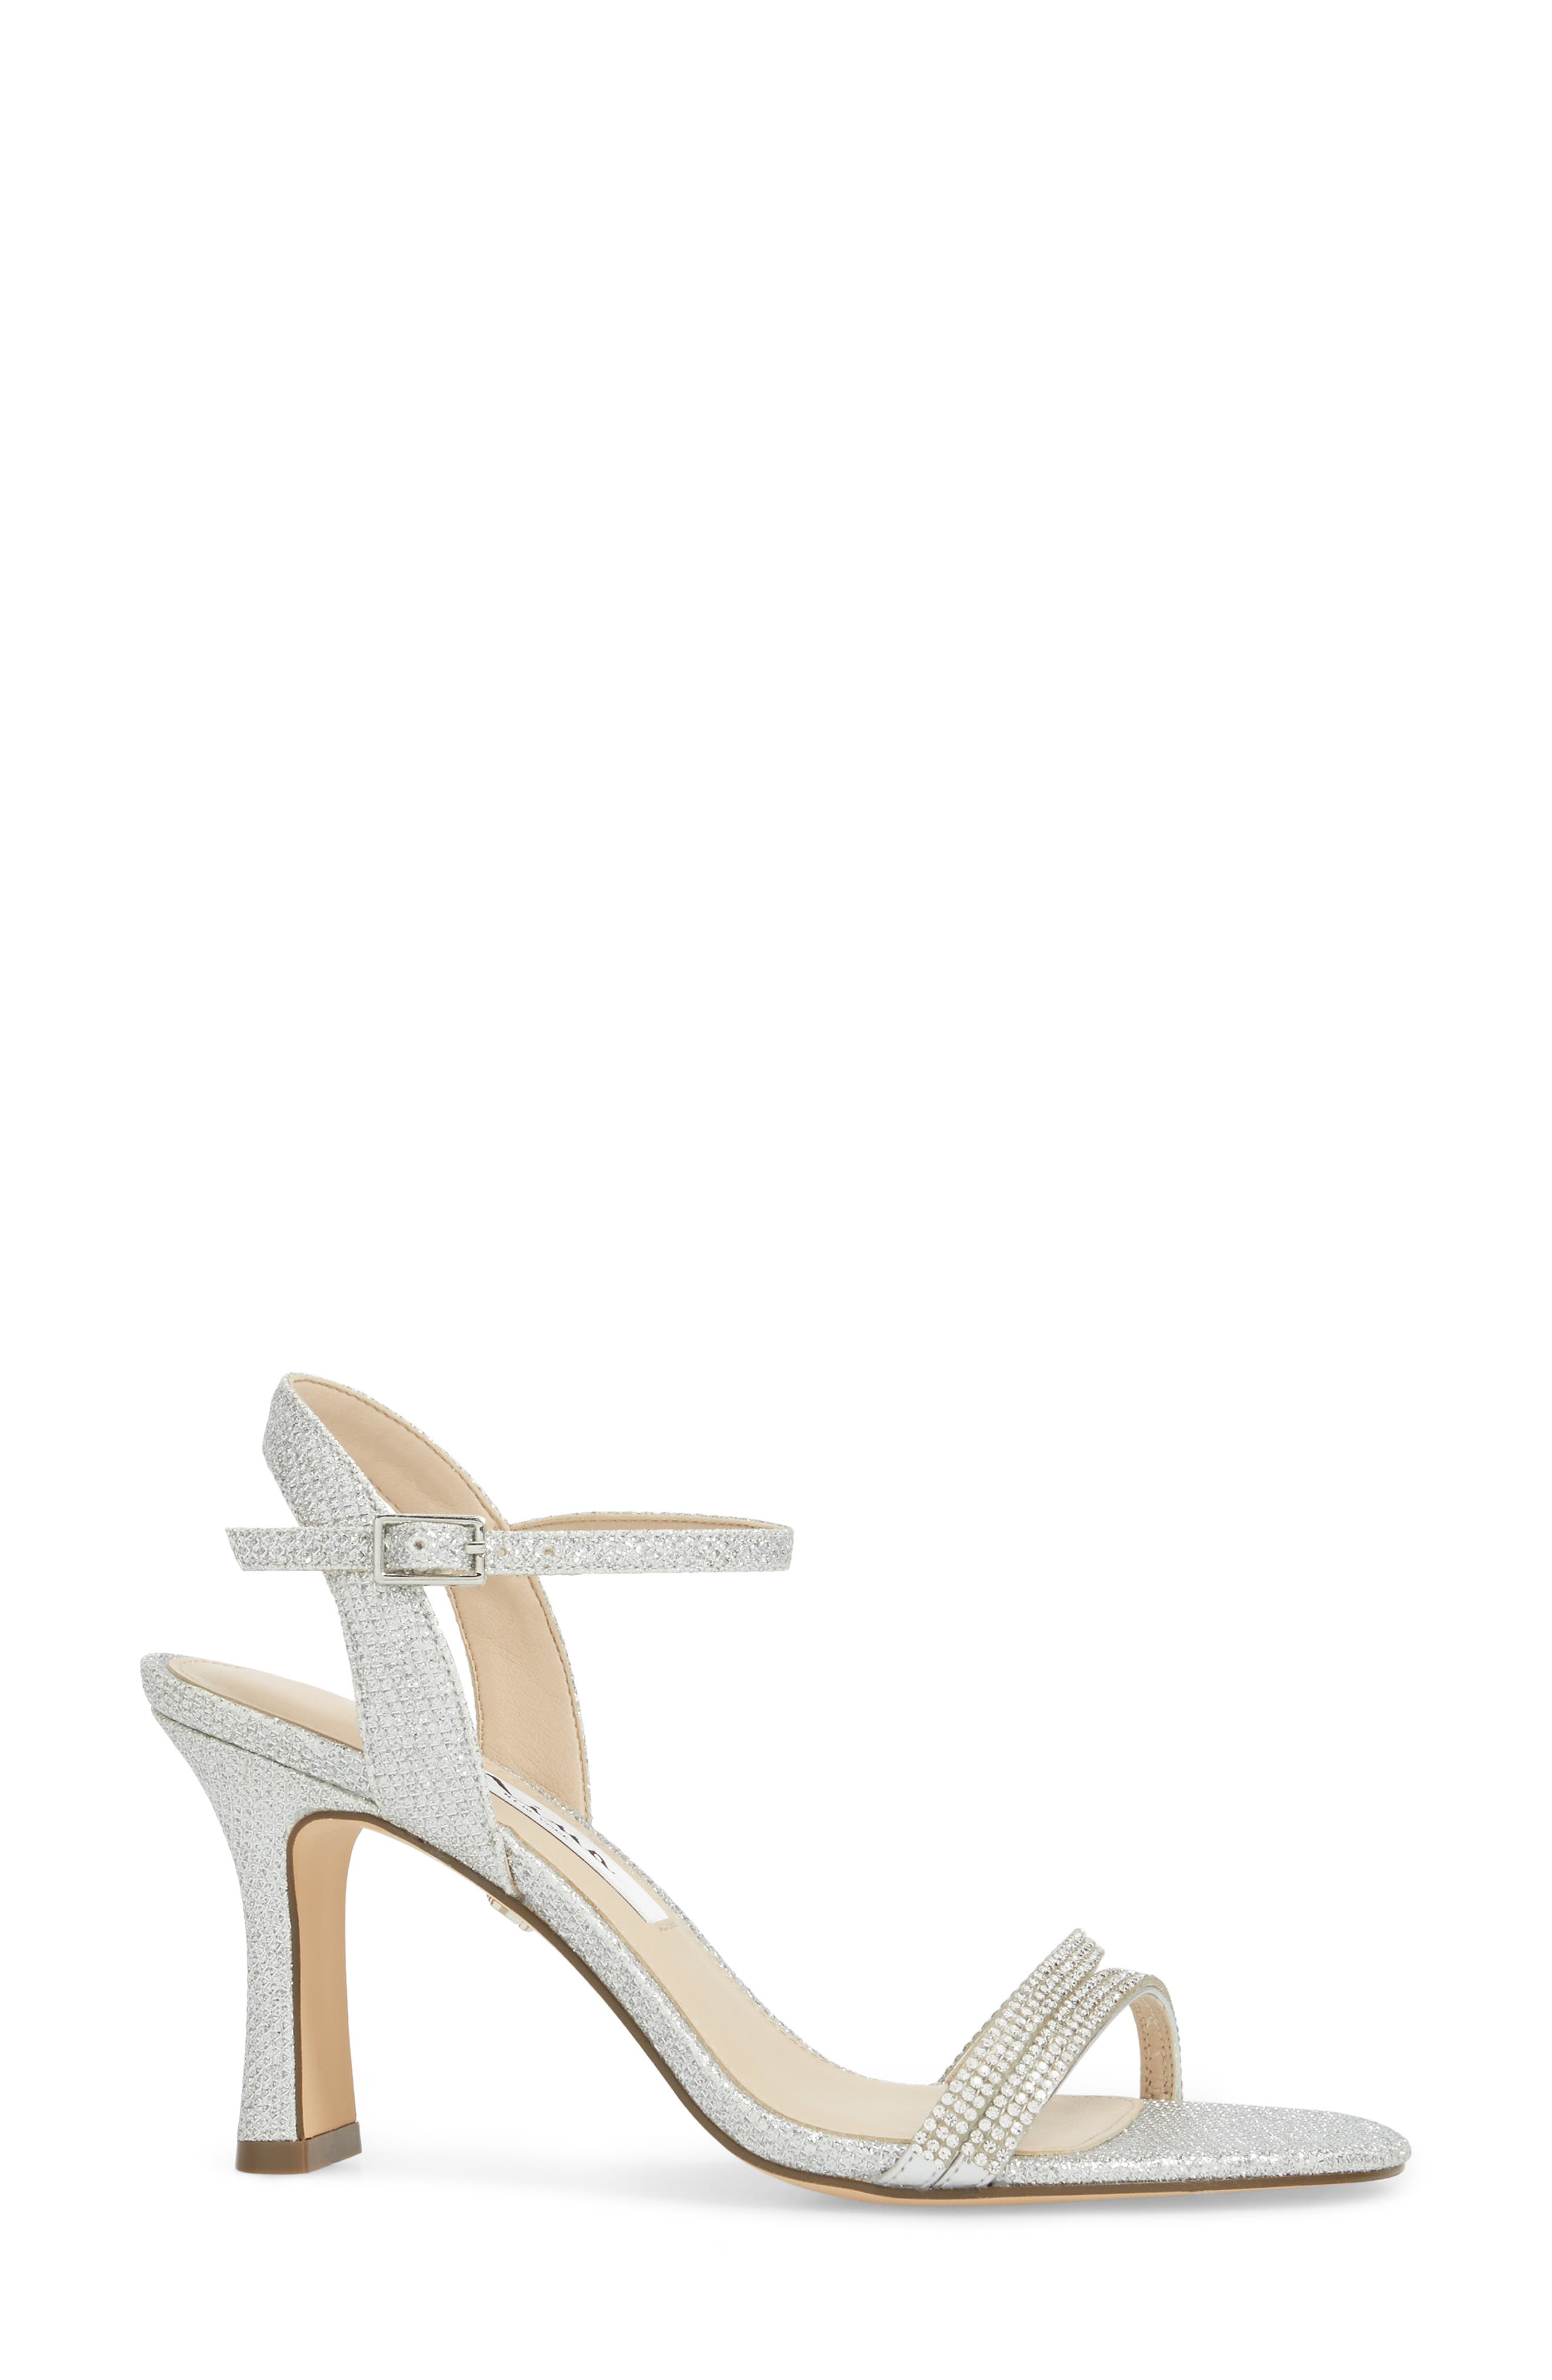 Avalon Ankle Strap Sandal,                             Alternate thumbnail 8, color,